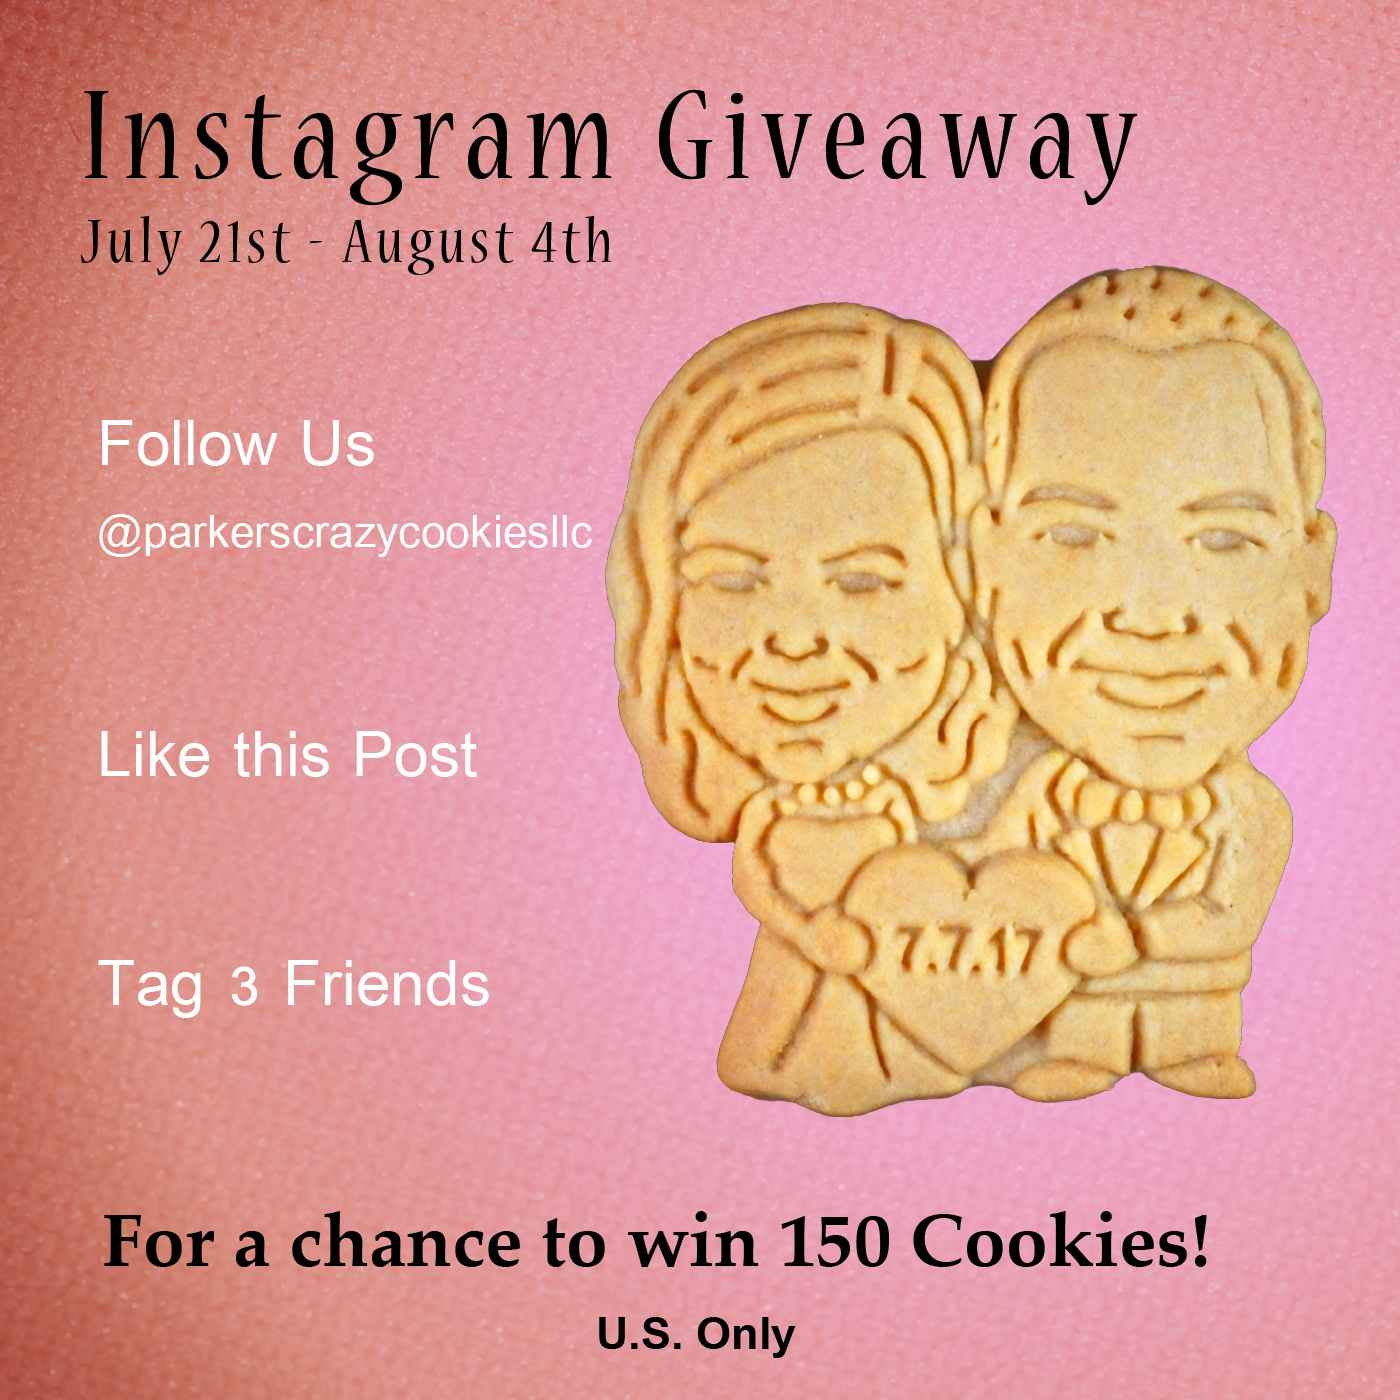 Instagram Giveaway 2017 - Couples Cookies